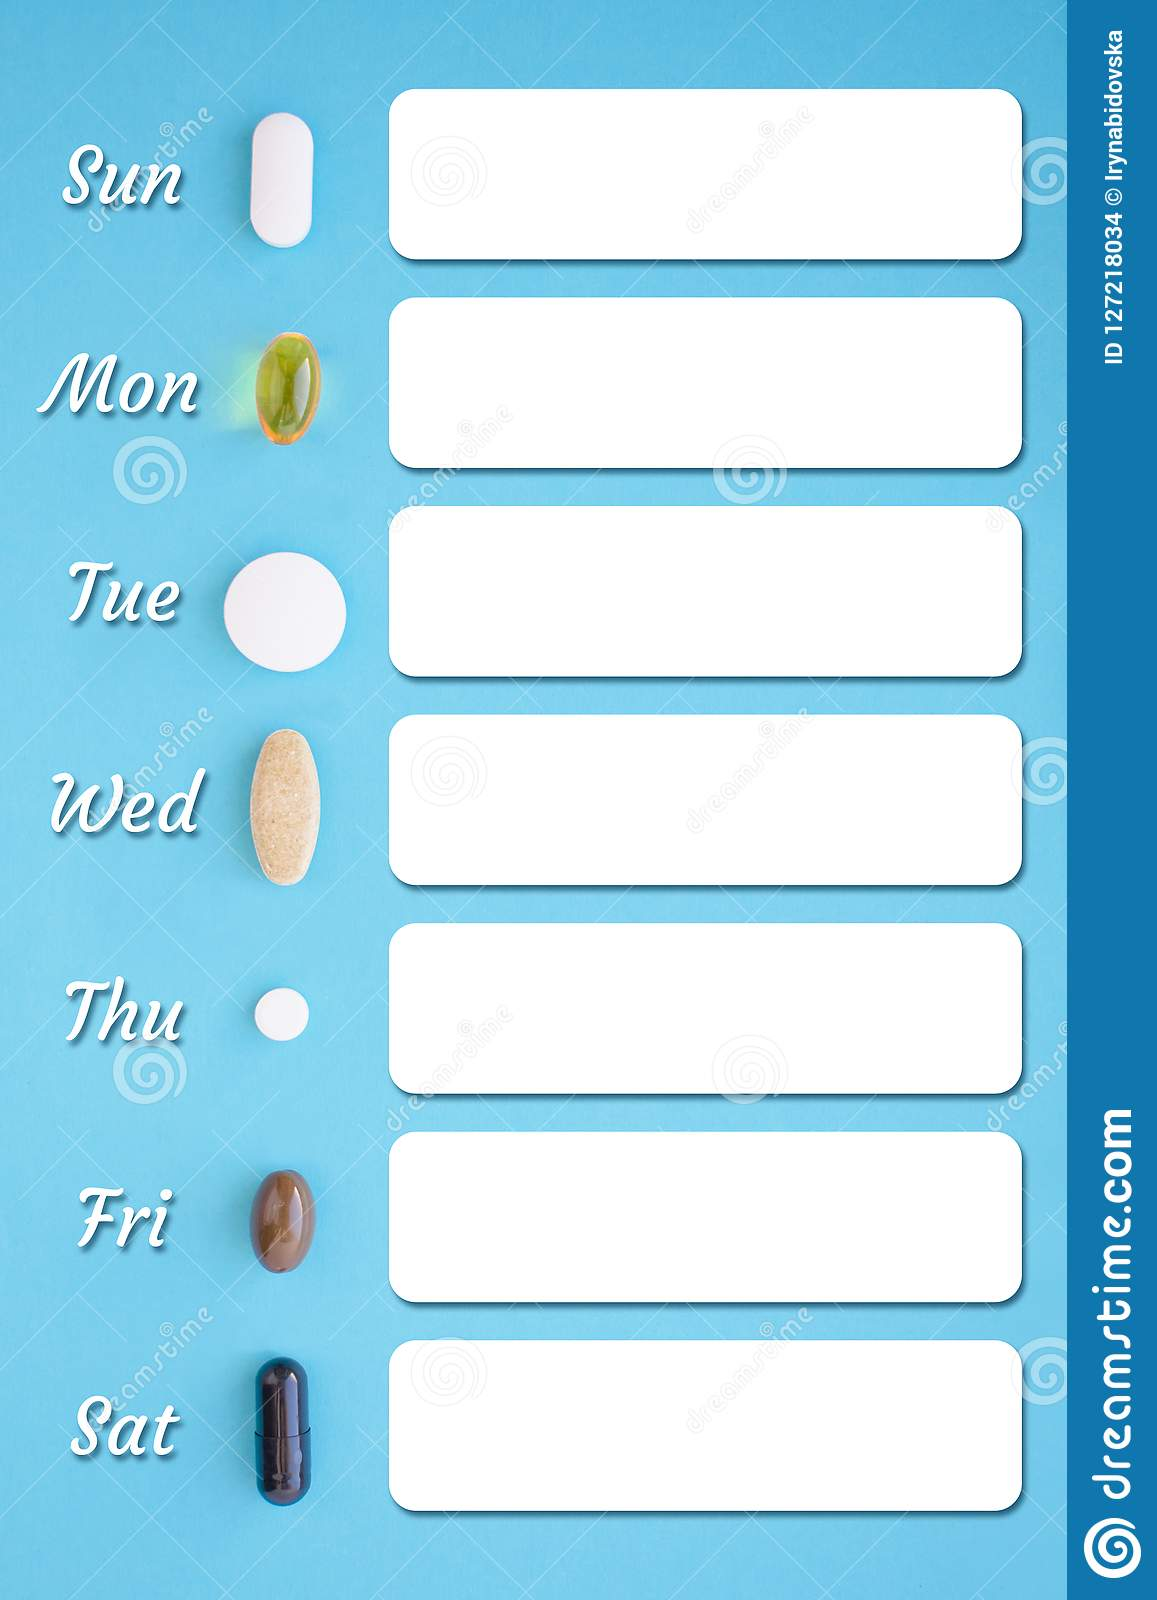 Recipe photo template with seven different types of pills and marking the days of the week